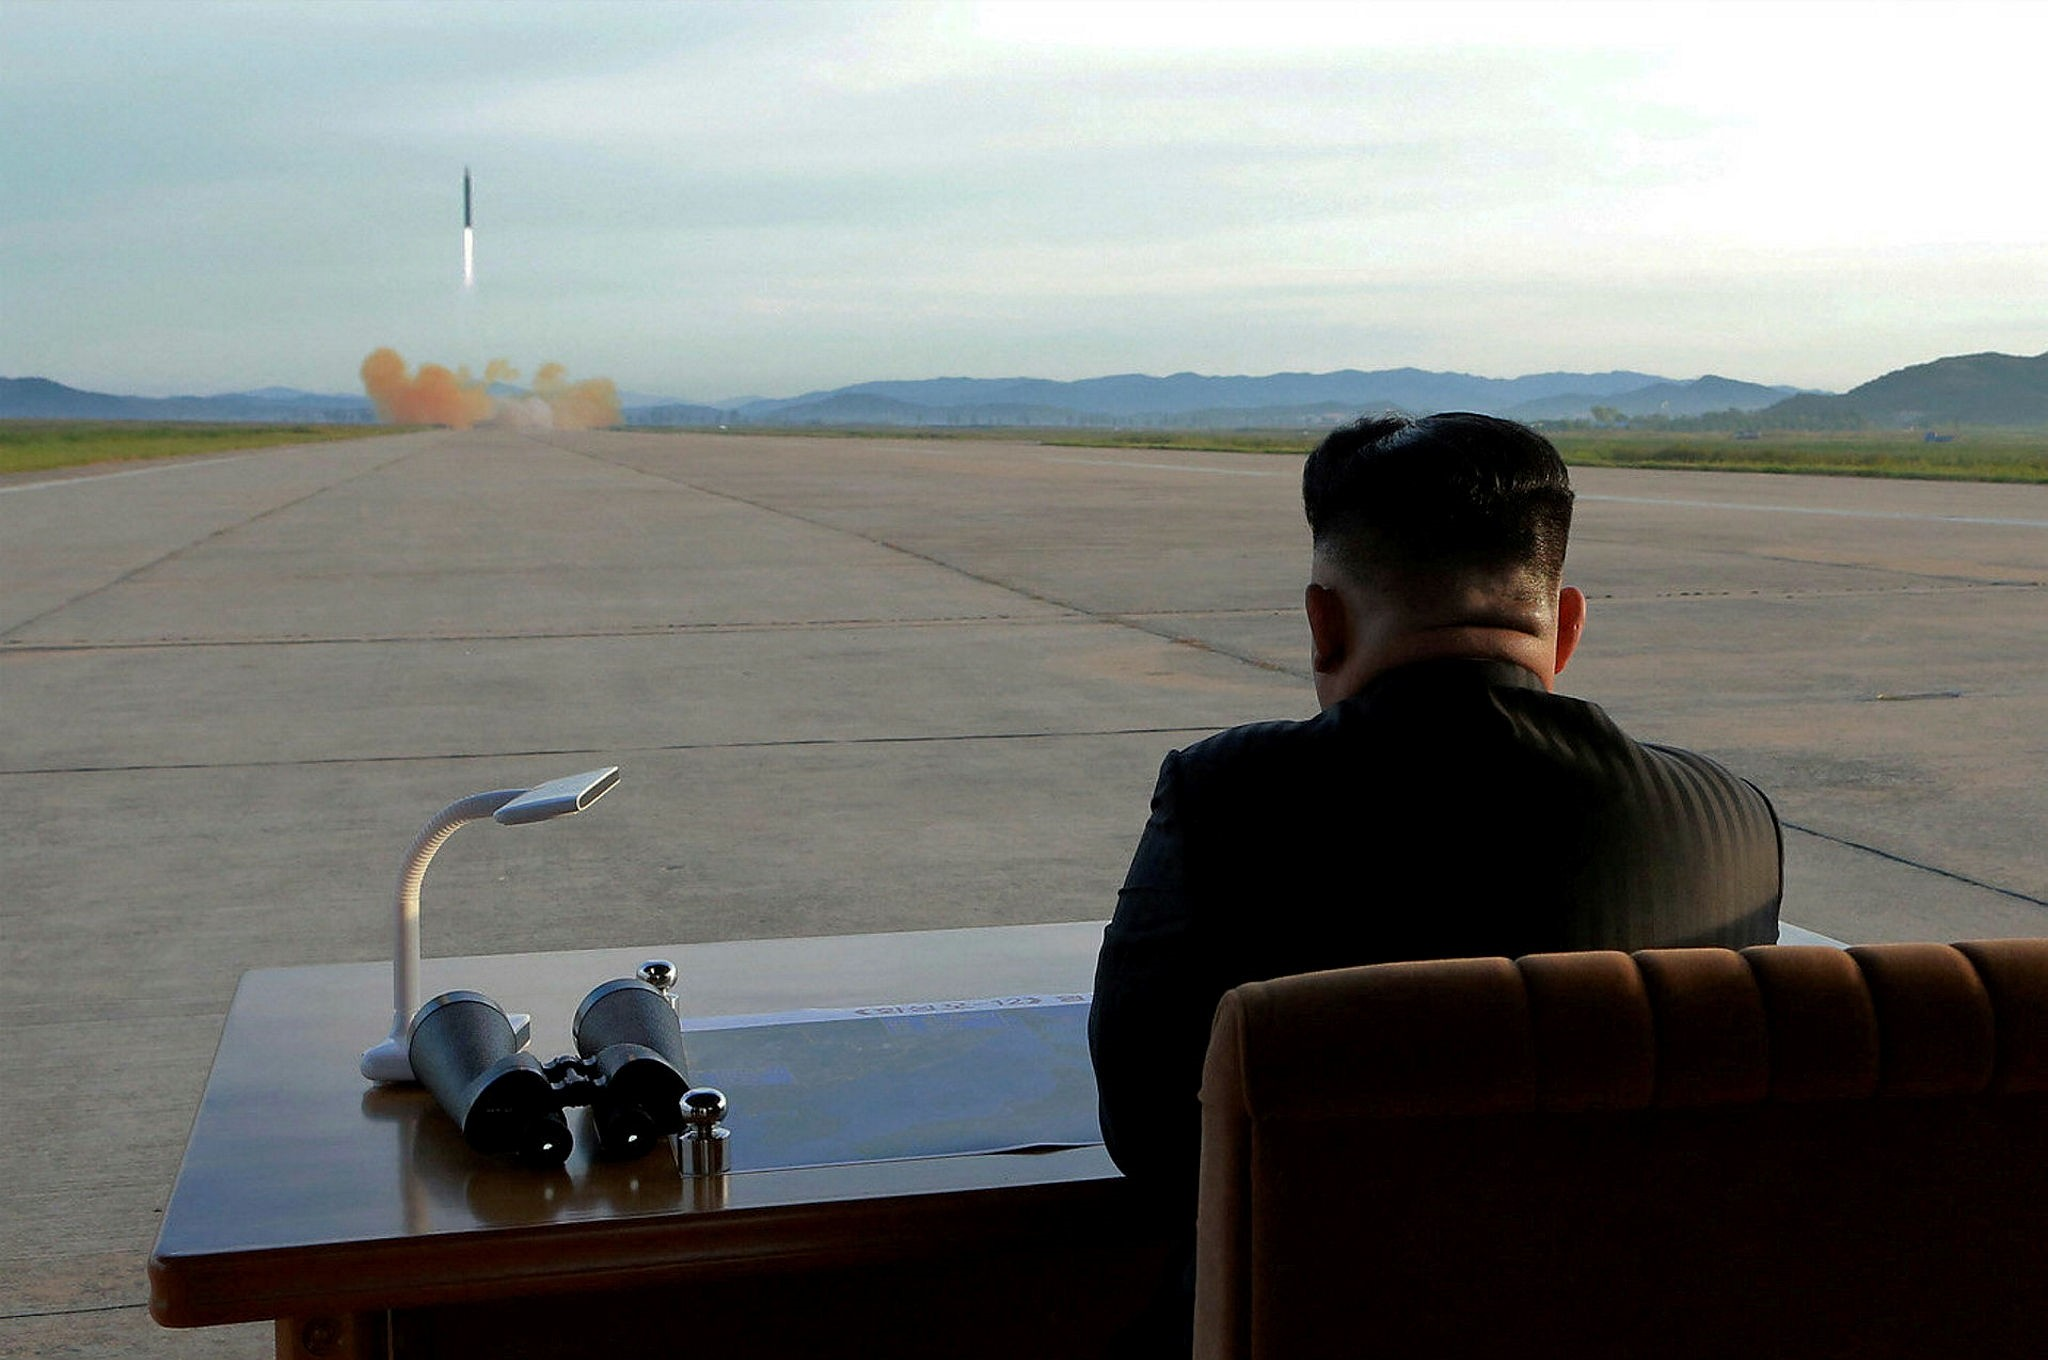 North Korean leader Kim Jong Un watches the launch of a Hwasong-12 missile in this undated photo released by North Korea's Korean Central News Agency (KCNA) on September 16, 2017. (Reuters Photo)